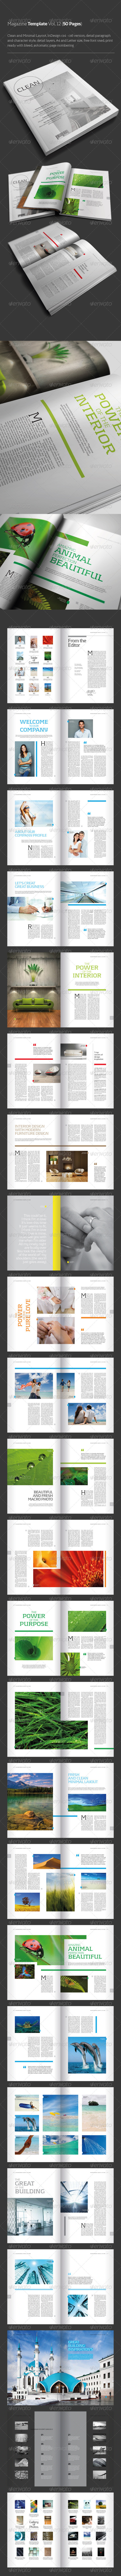 GraphicRiver Indesign Magazine Template Vol 12 50 Pages 4699685